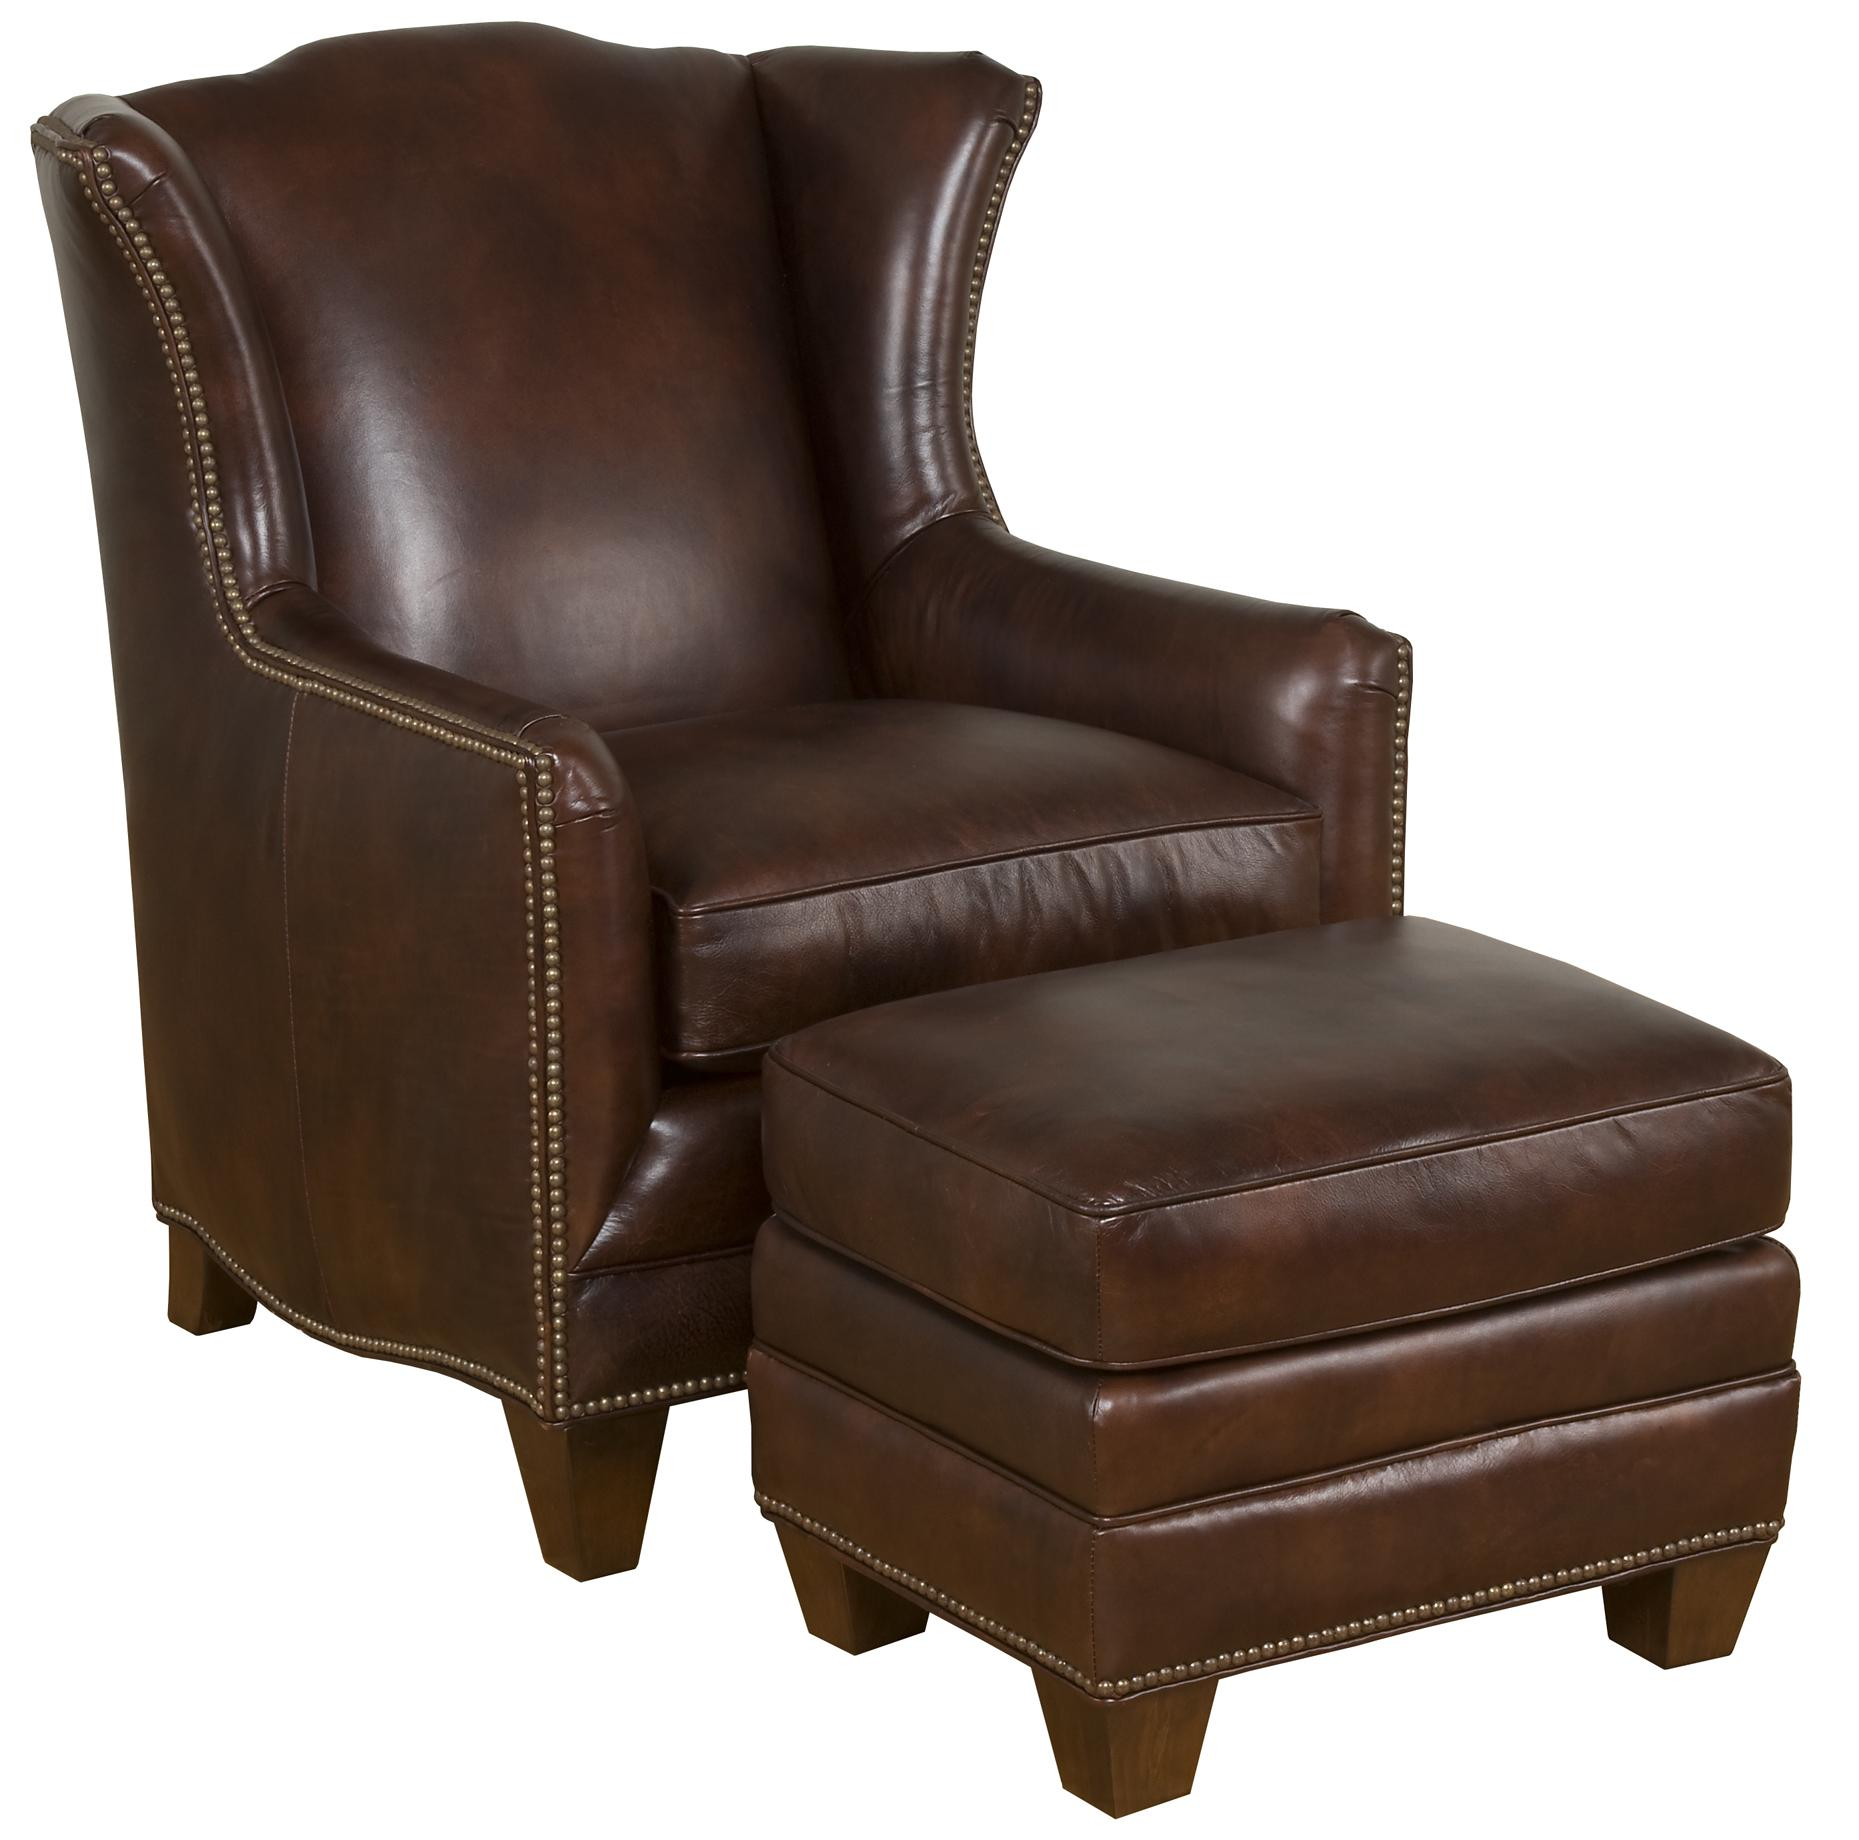 King Hickory Accent Chairs and Ottomans Athens Traditional